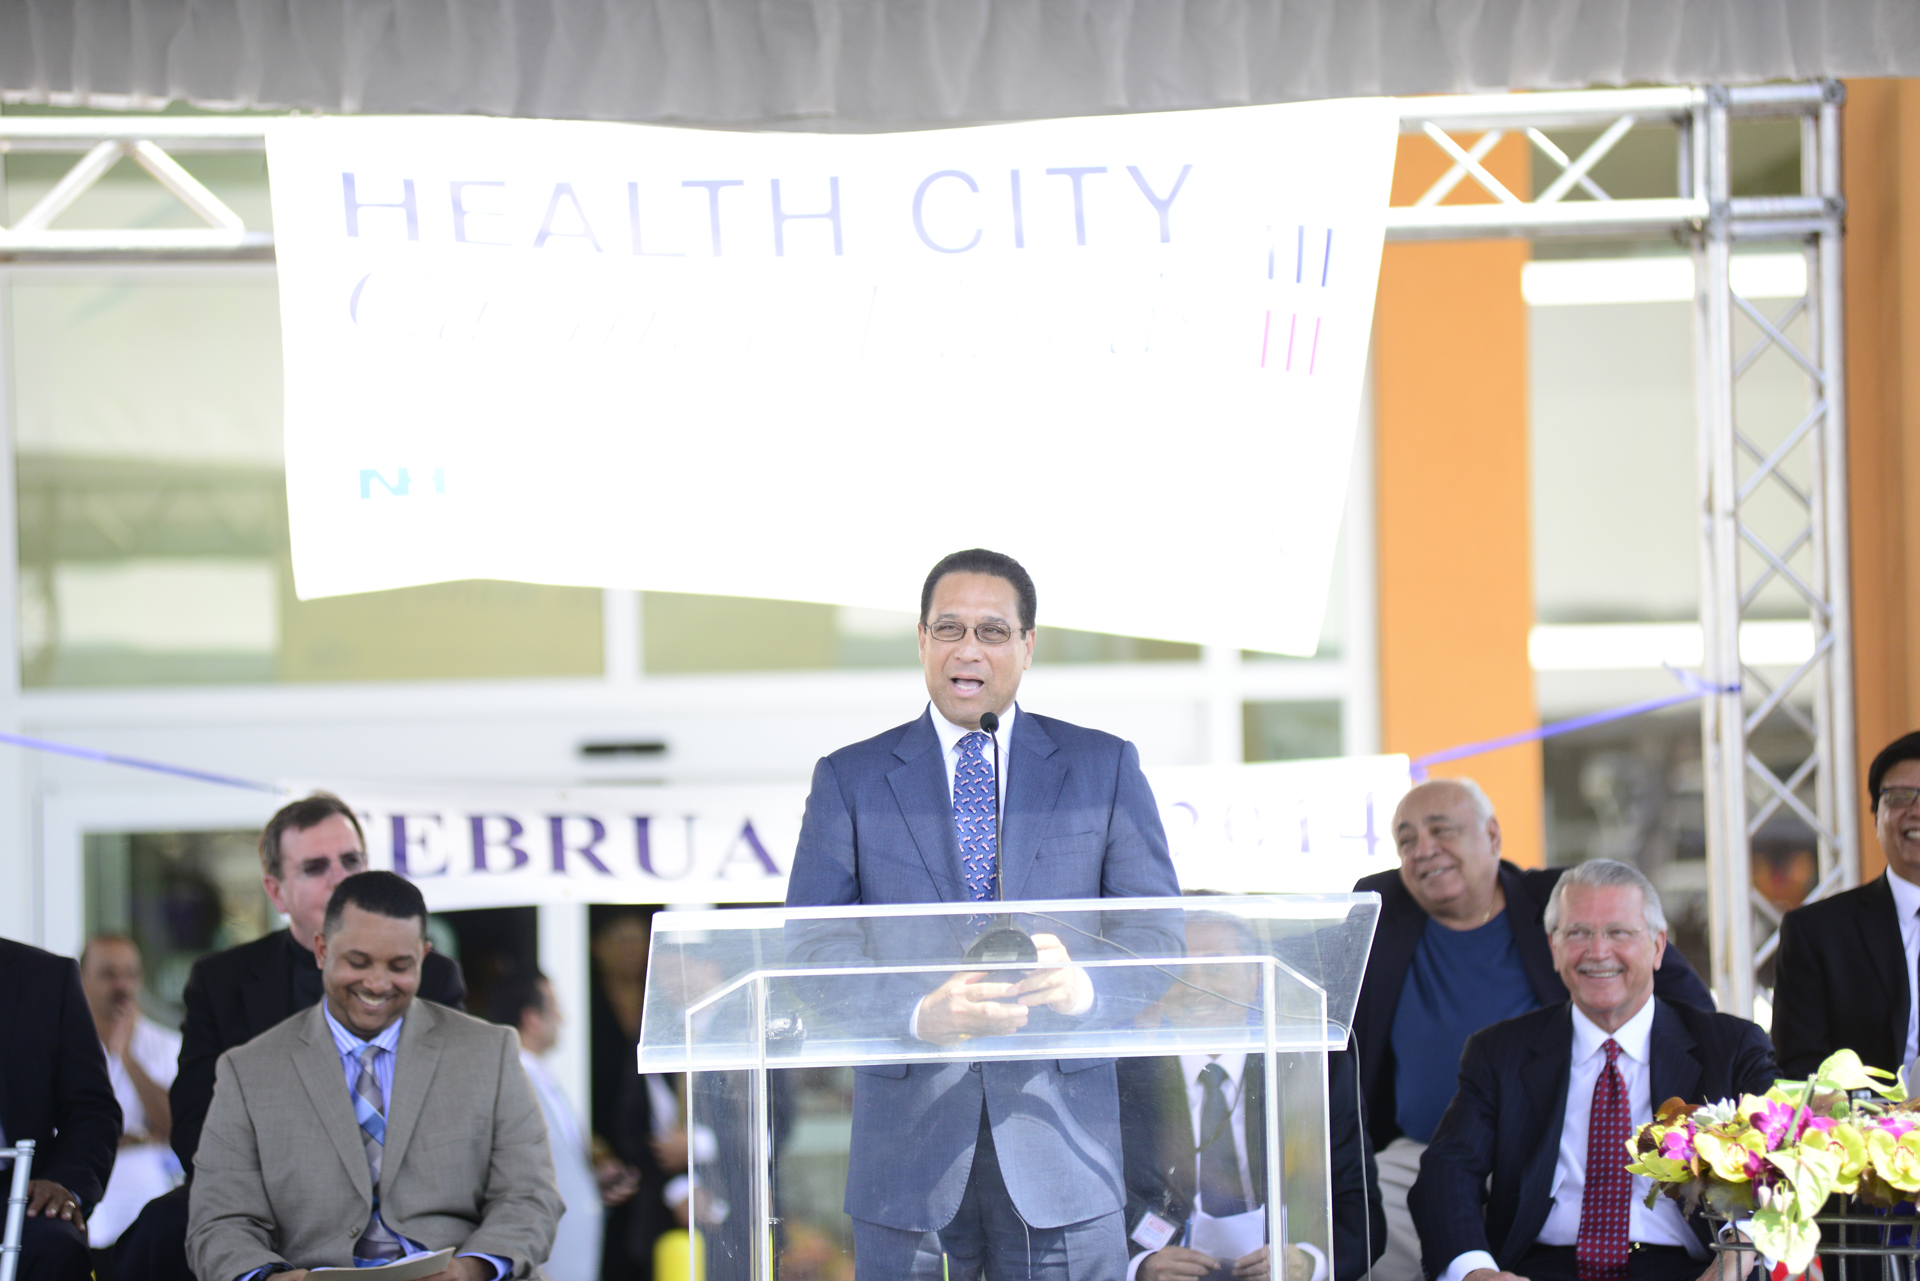 The Premier Hon Alden McLaughlin at Health City Cayman Islands Grand Opening